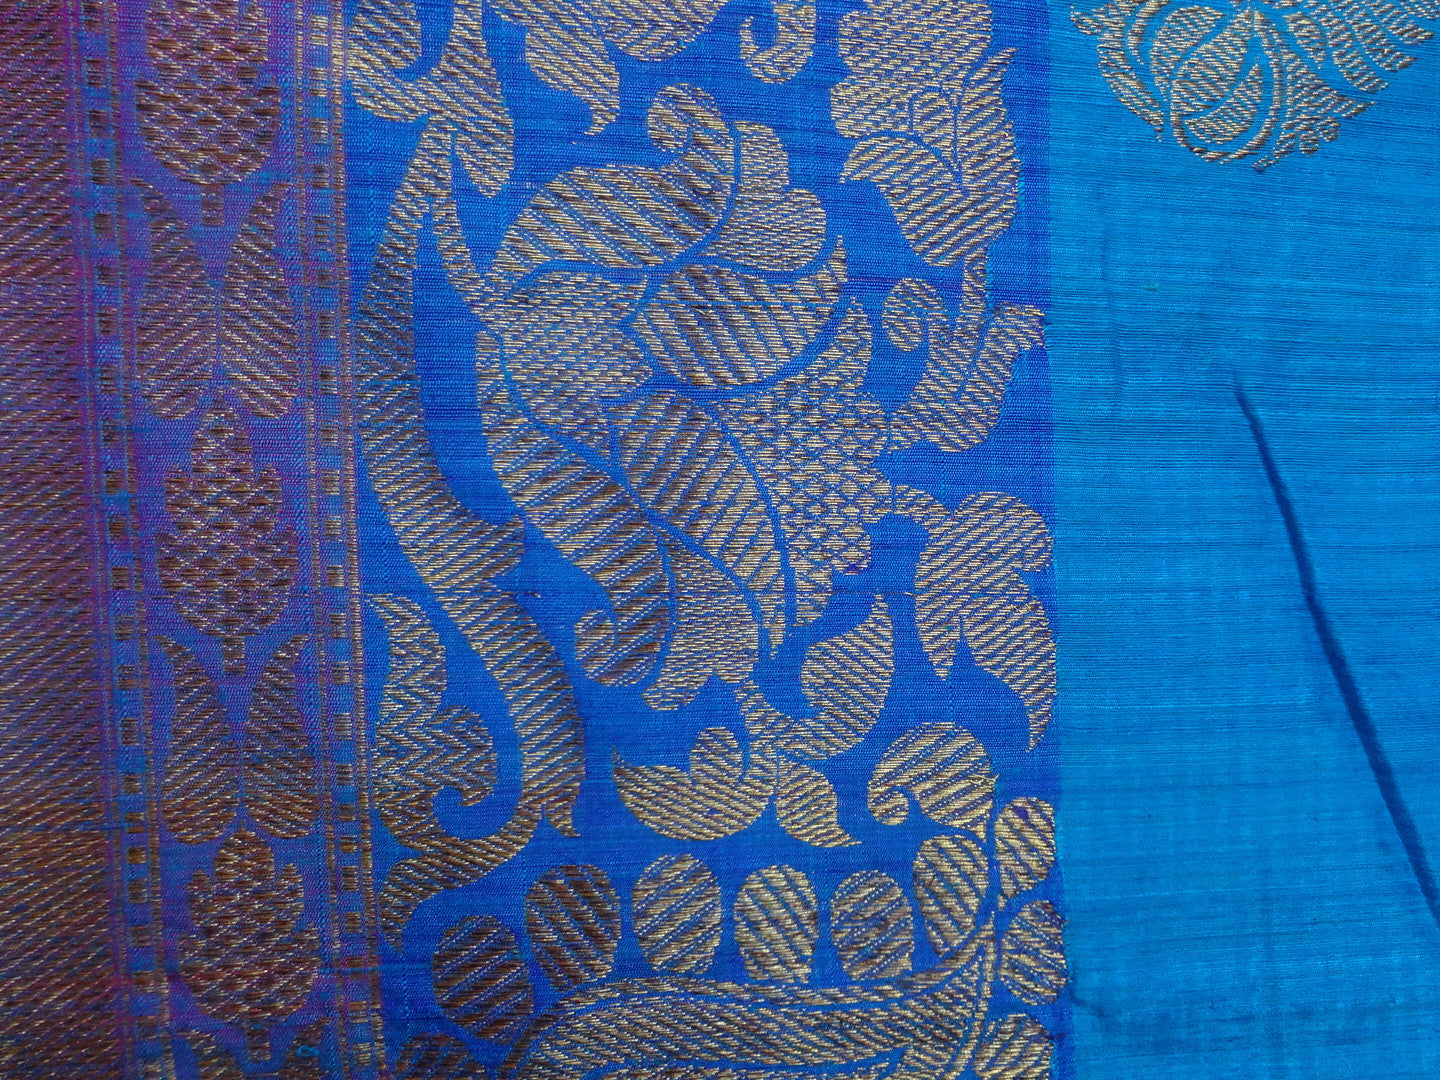 Banarasee/Banarasee Pure Handloom Dupion Silk Sari With Broad Border-Blue